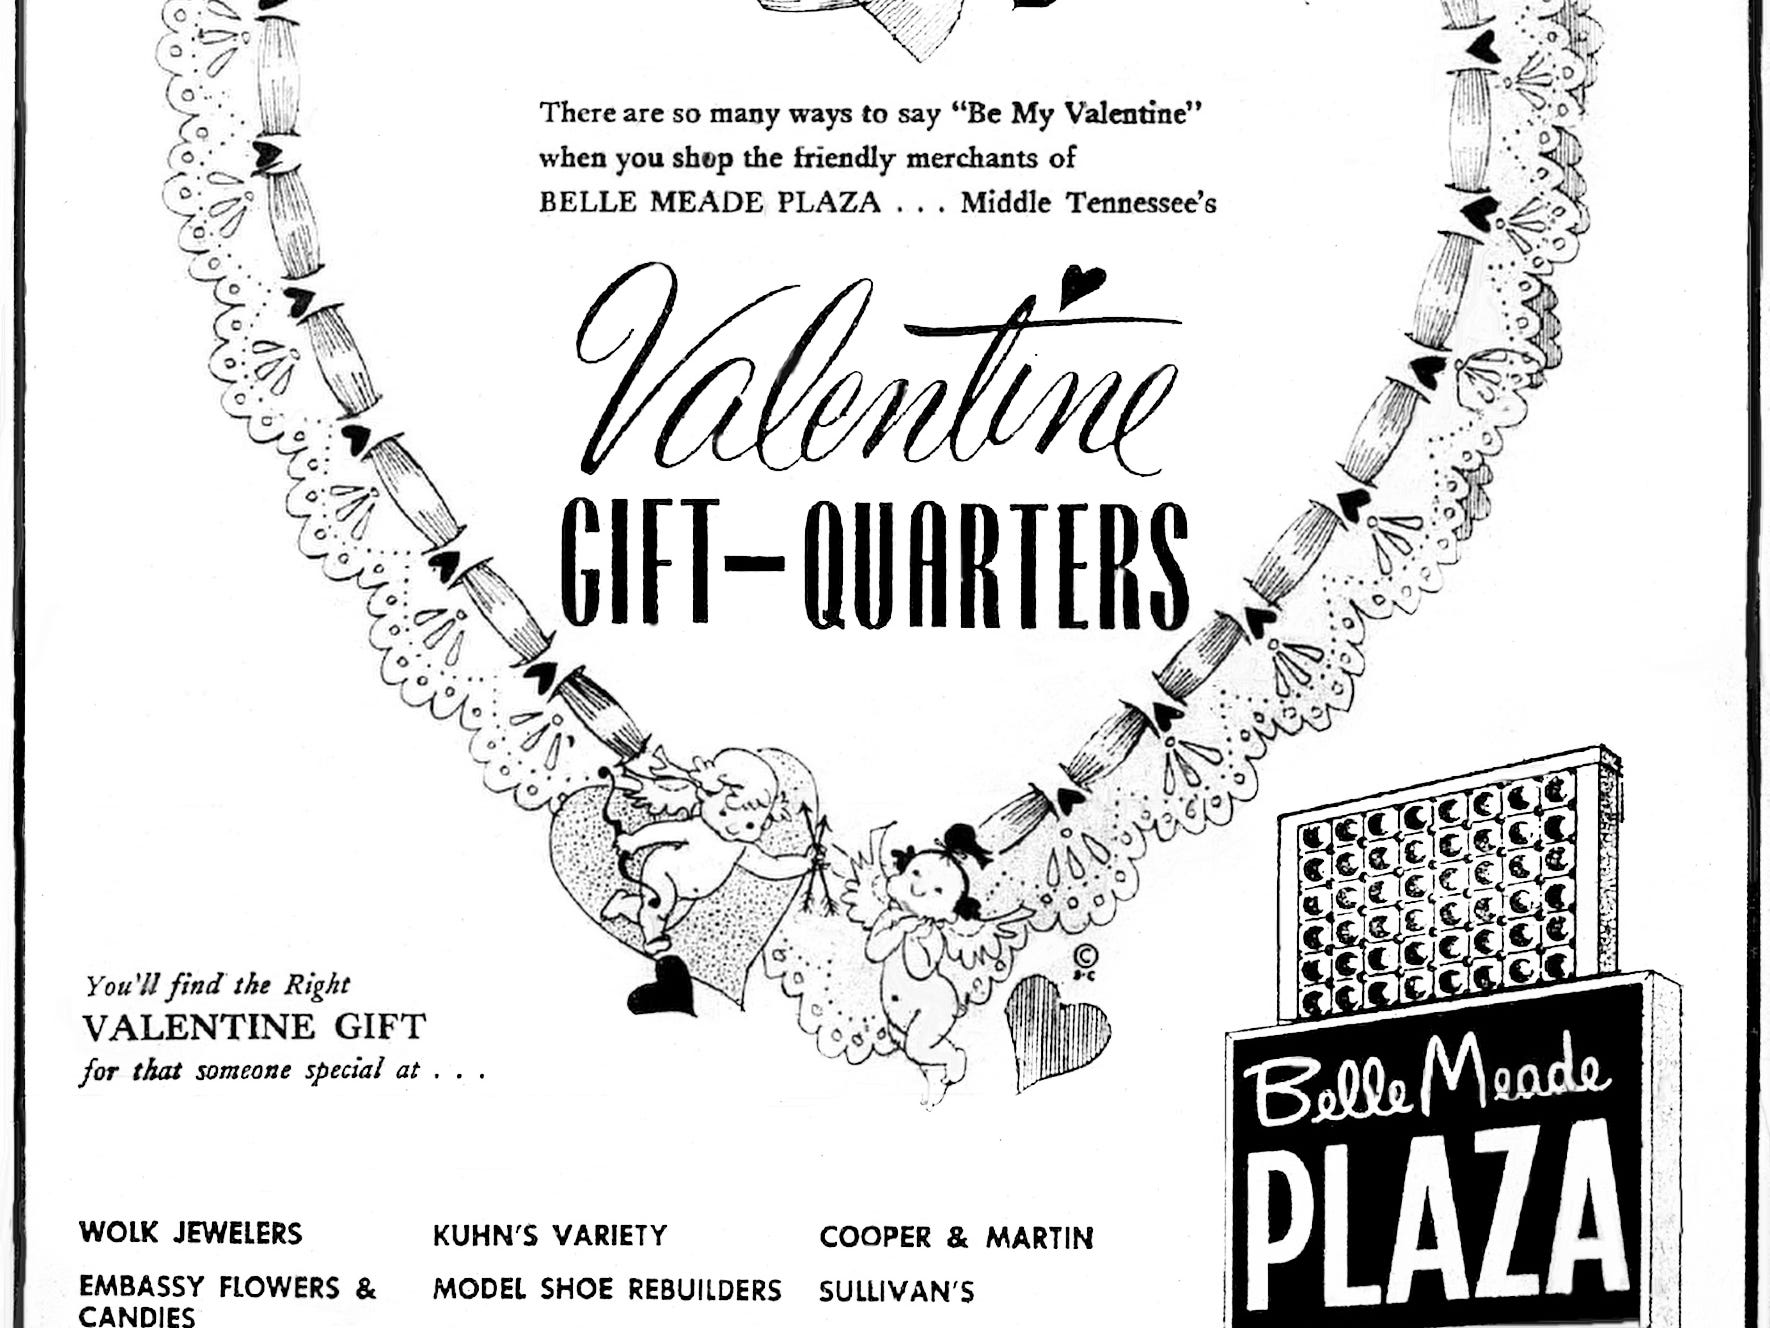 "Belle Meade Plaza placed an ad in the Feb. 11, 1964, issue of The Tennessean to promote that they are the ""Valentine Gift-Quarters"" and that you will find the right Valentine gift for that someone special."